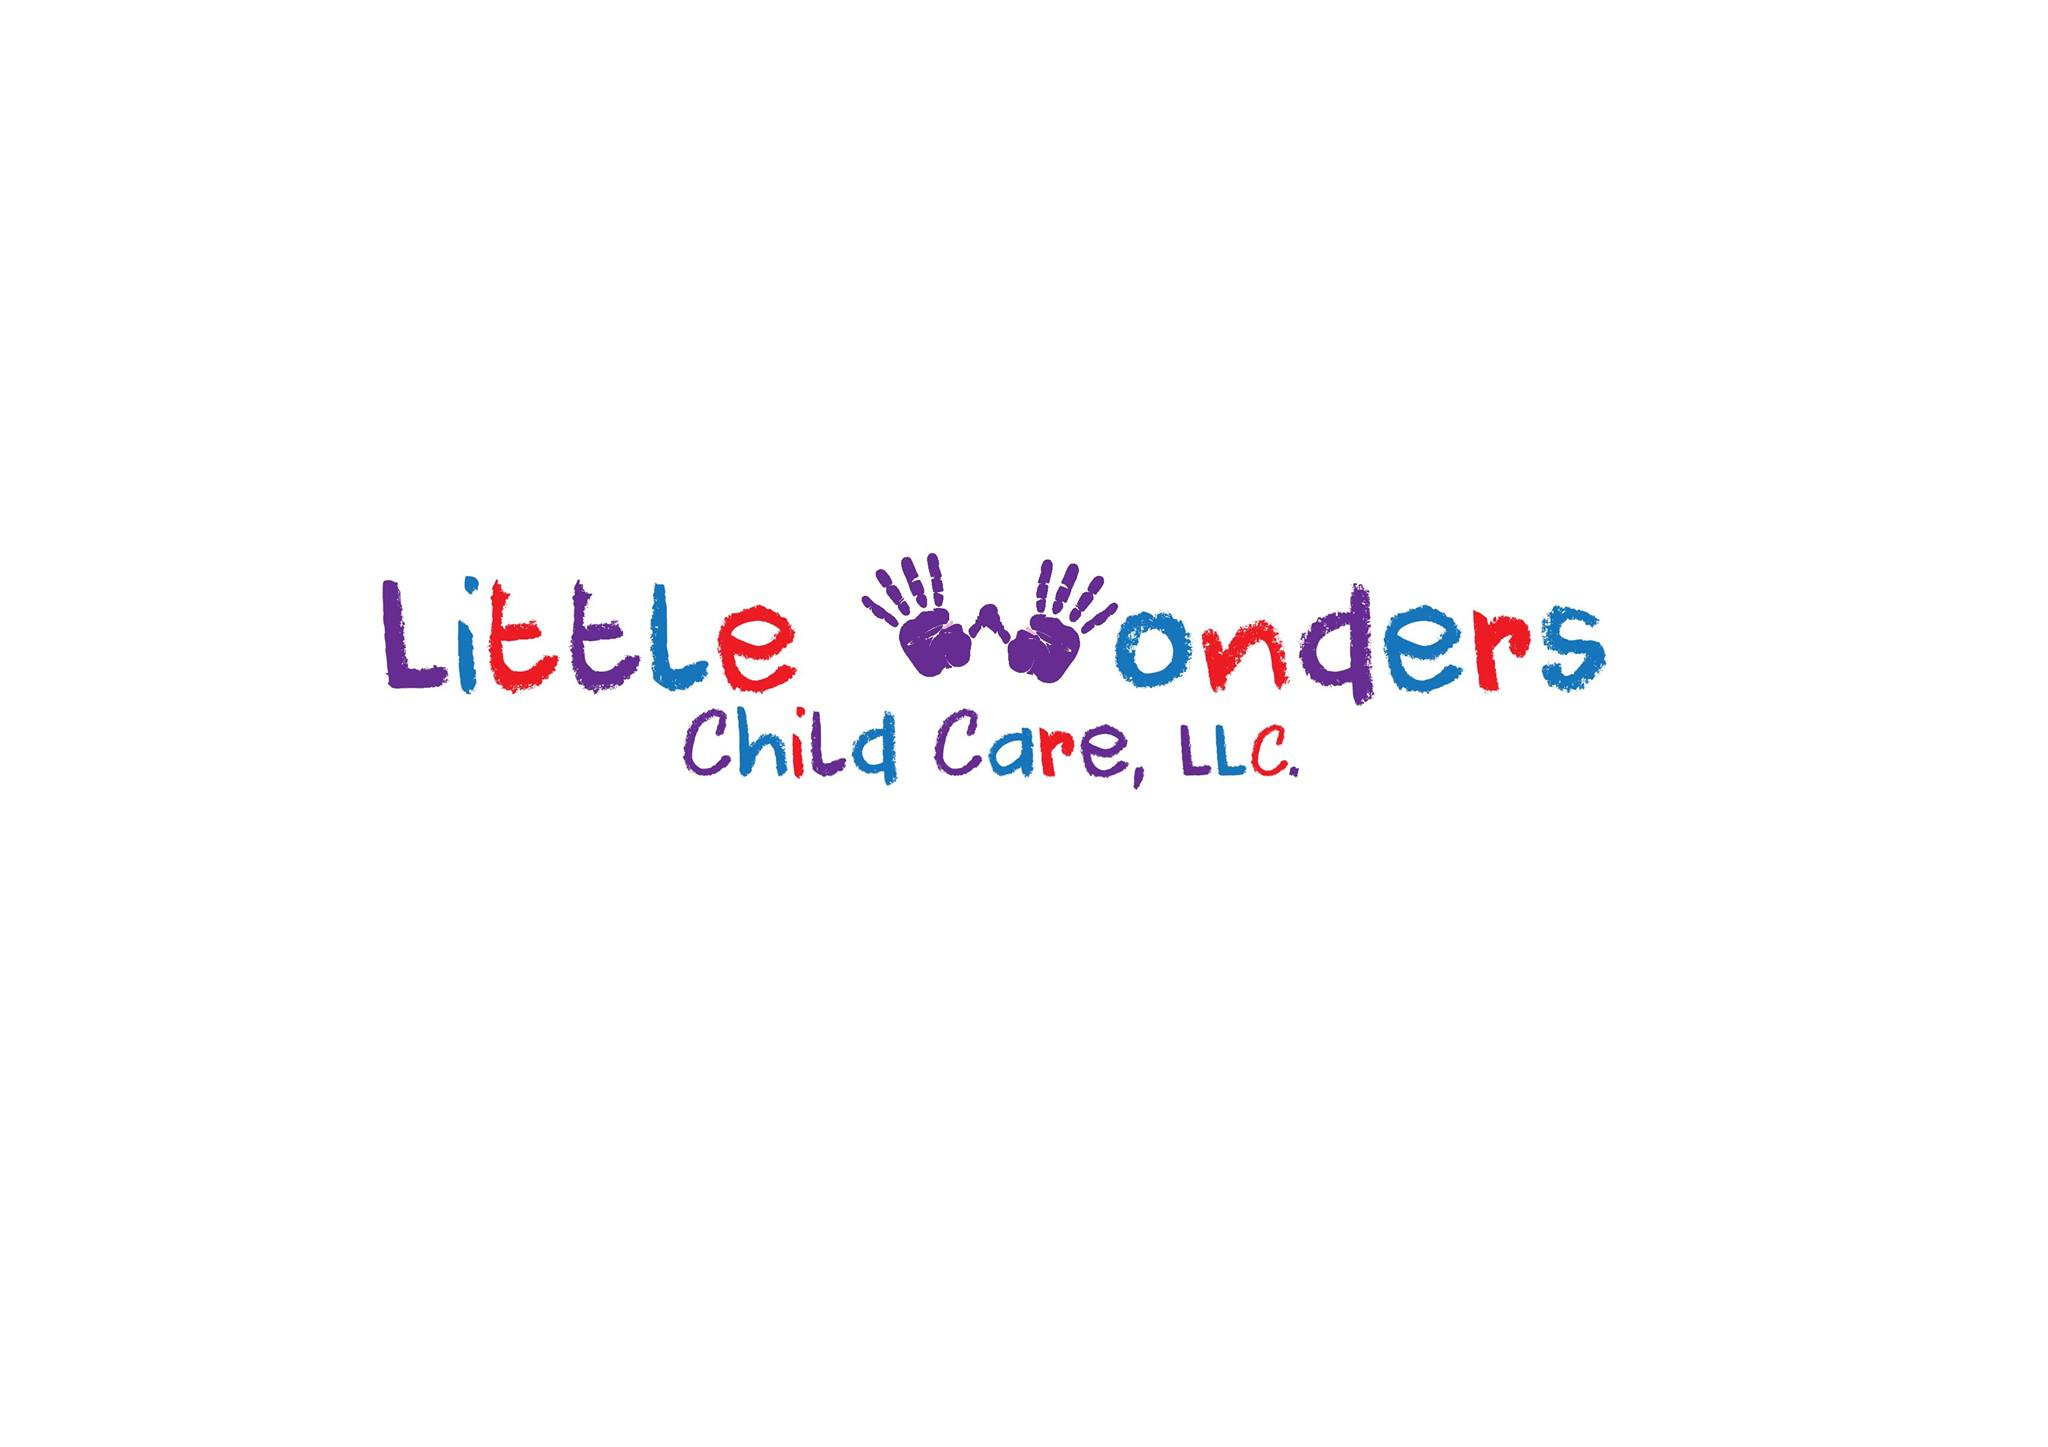 Little Wonders Child Care